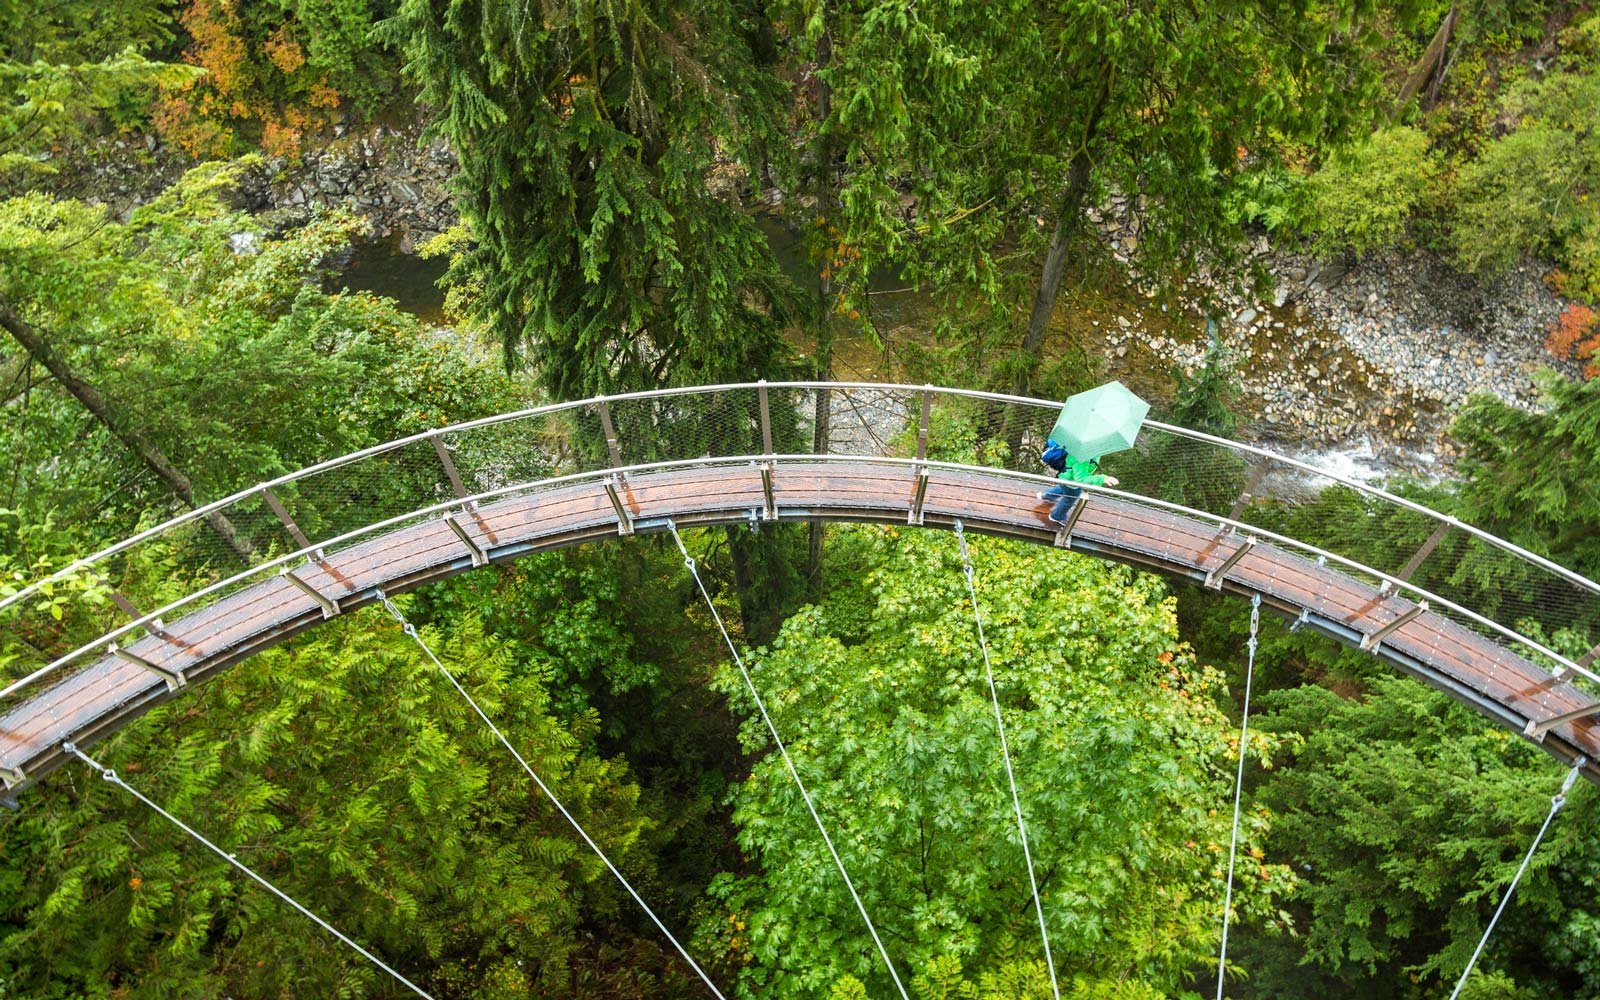 Capilano Suspension Bridge in West Vancouver